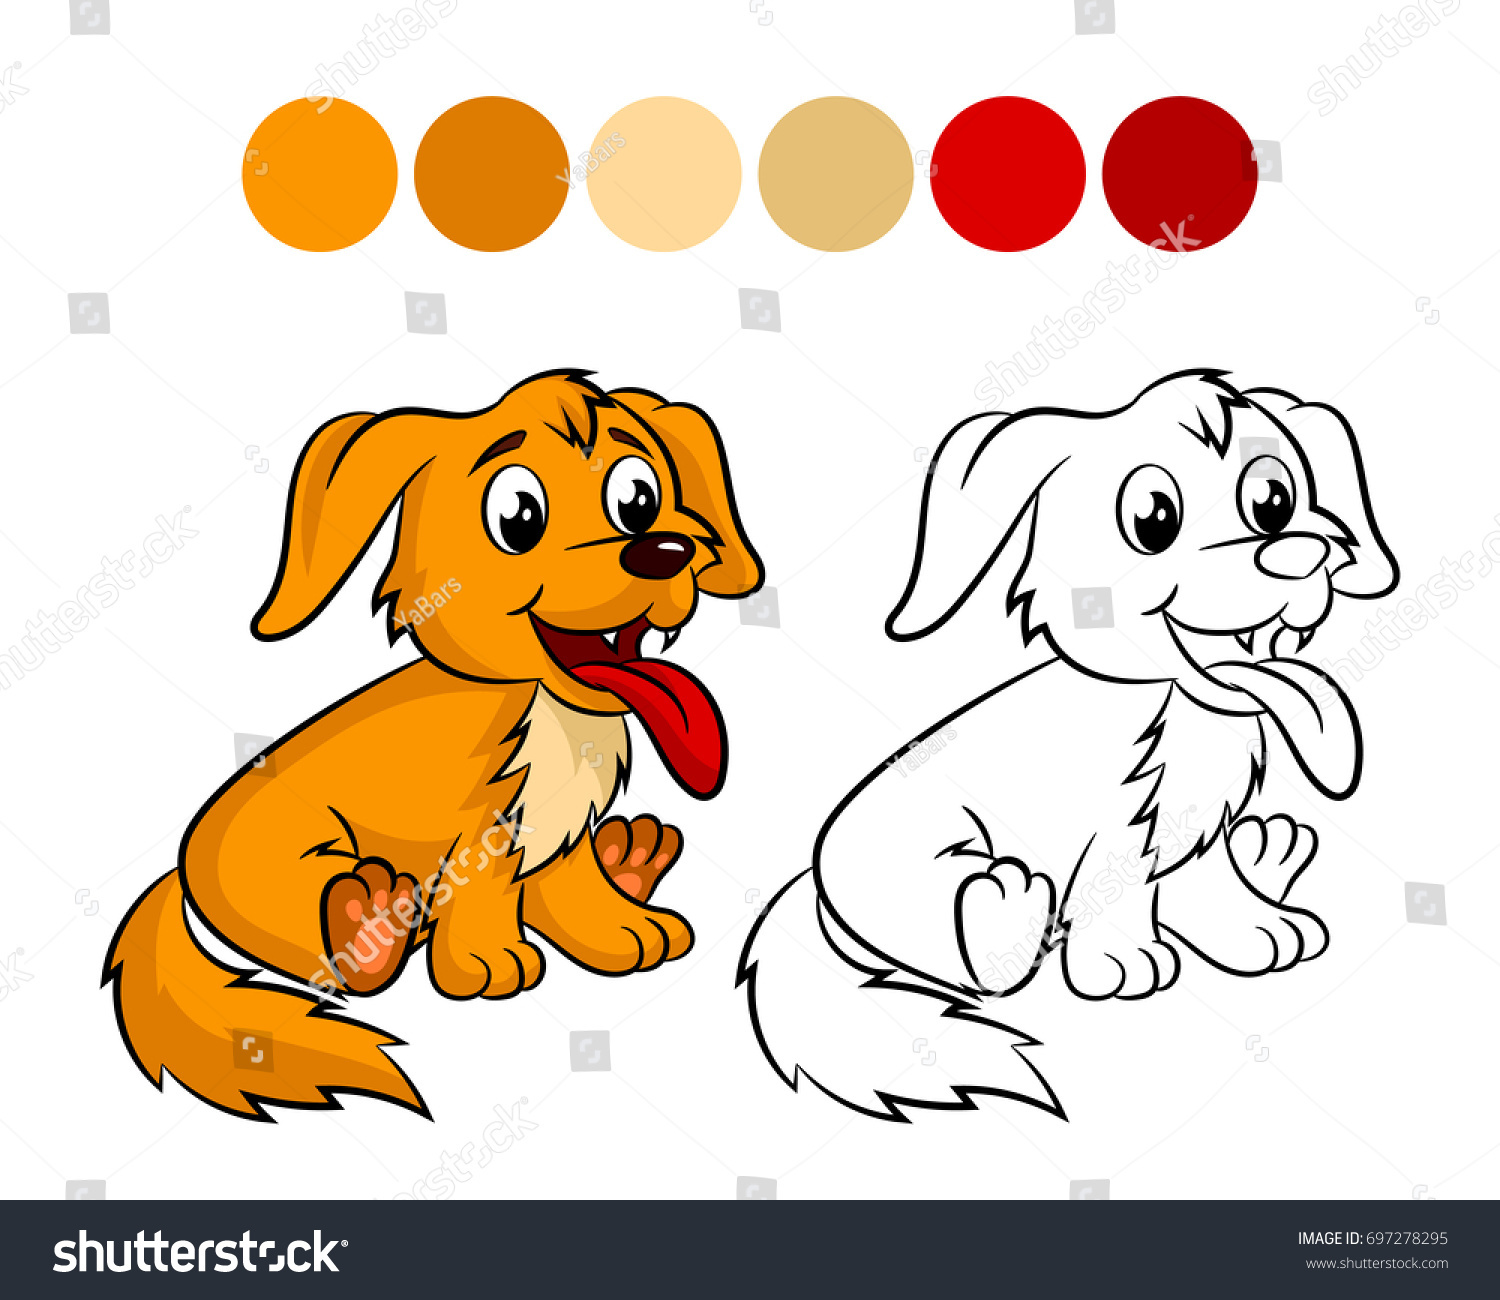 Dog Coloring Book Design For Kids And Children Illustration Isolated On White Background